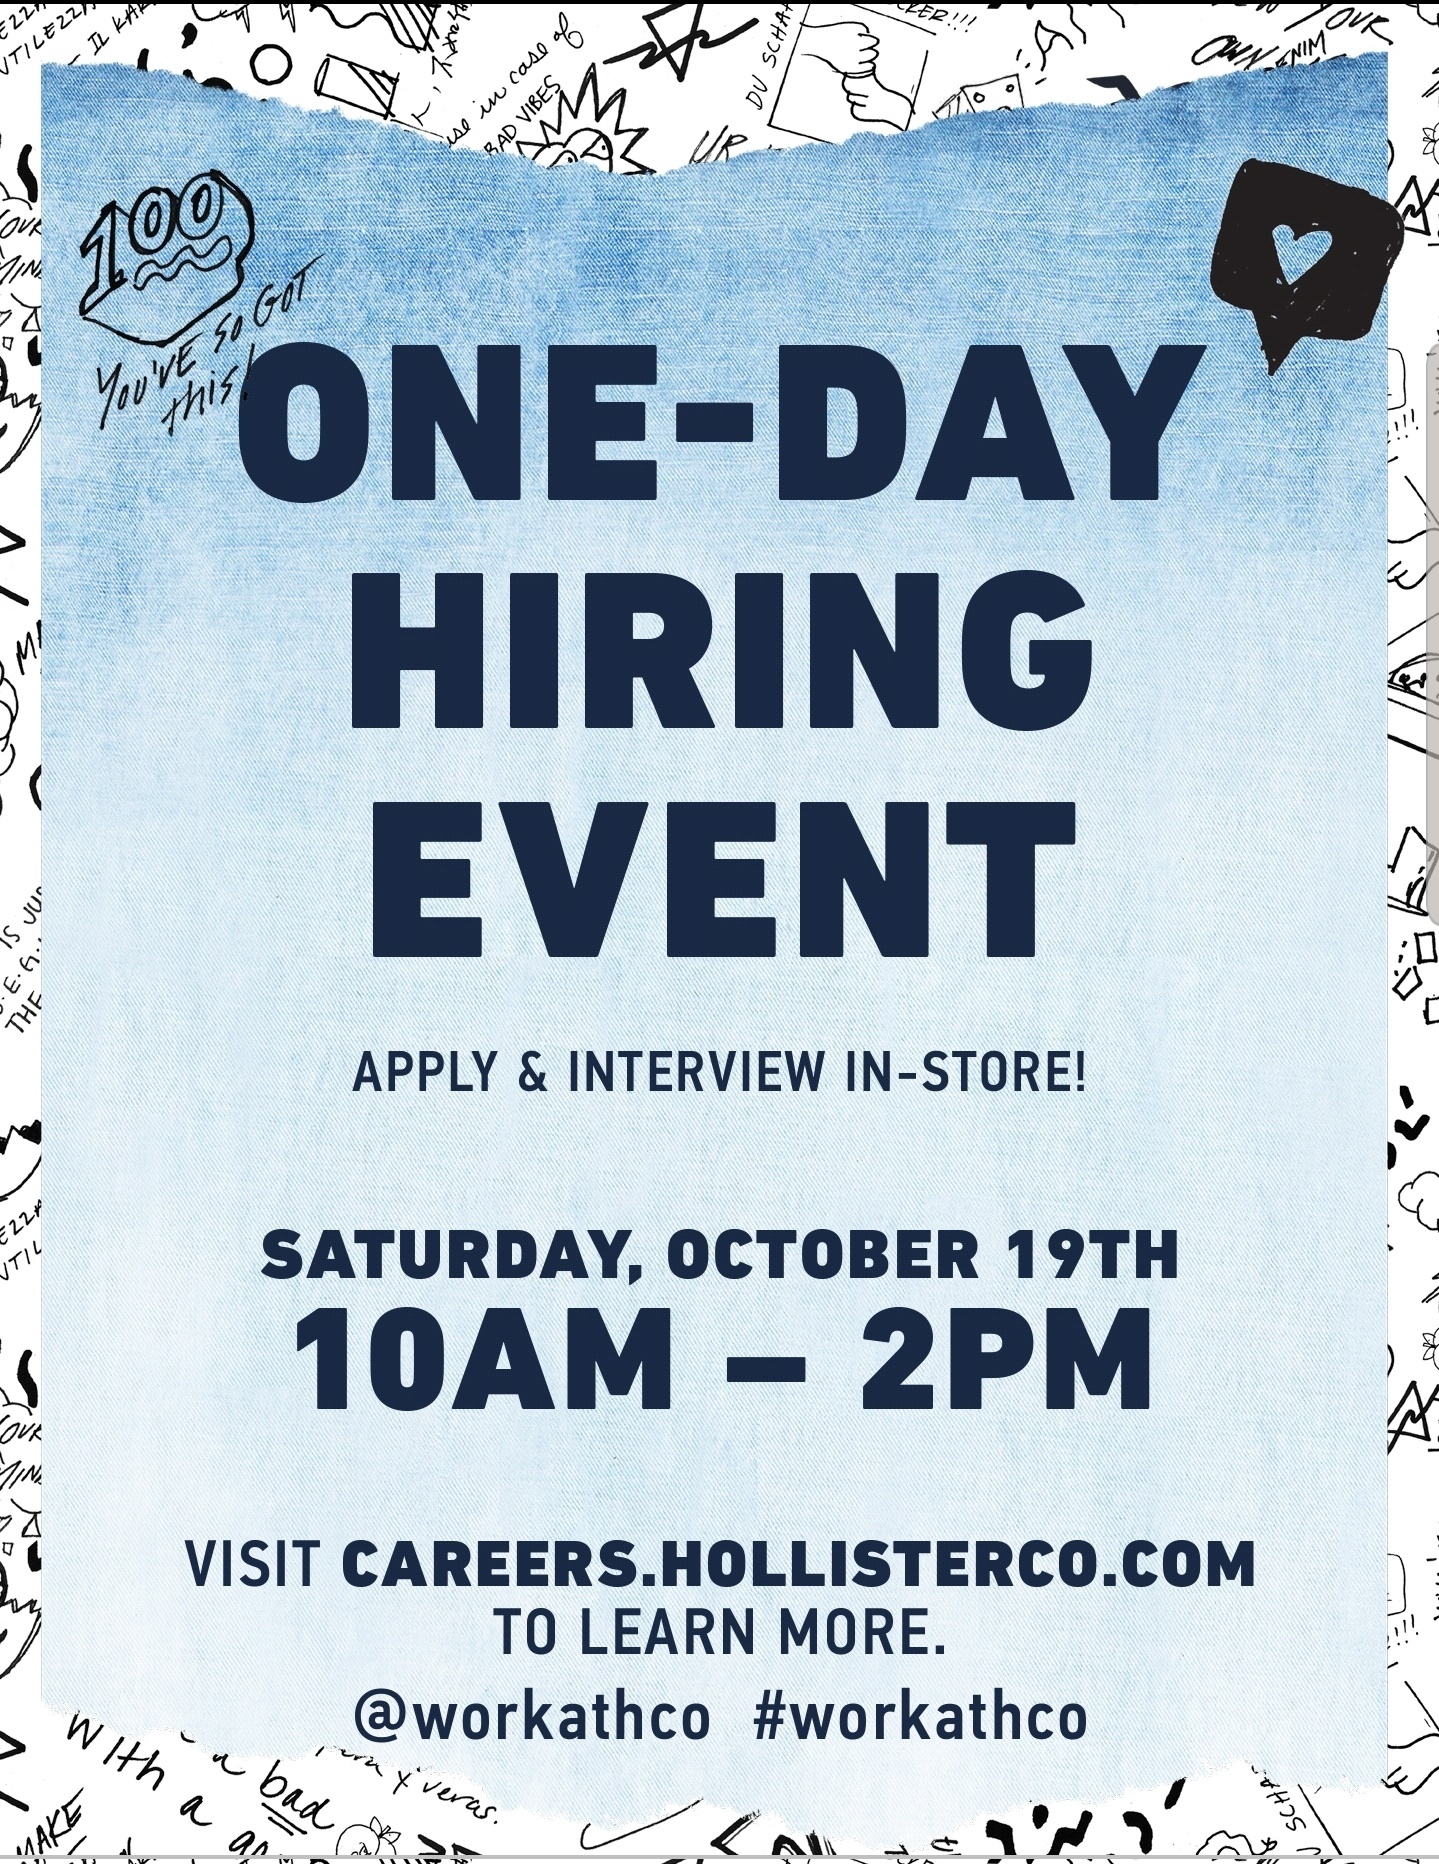 One-Day Hiring Event